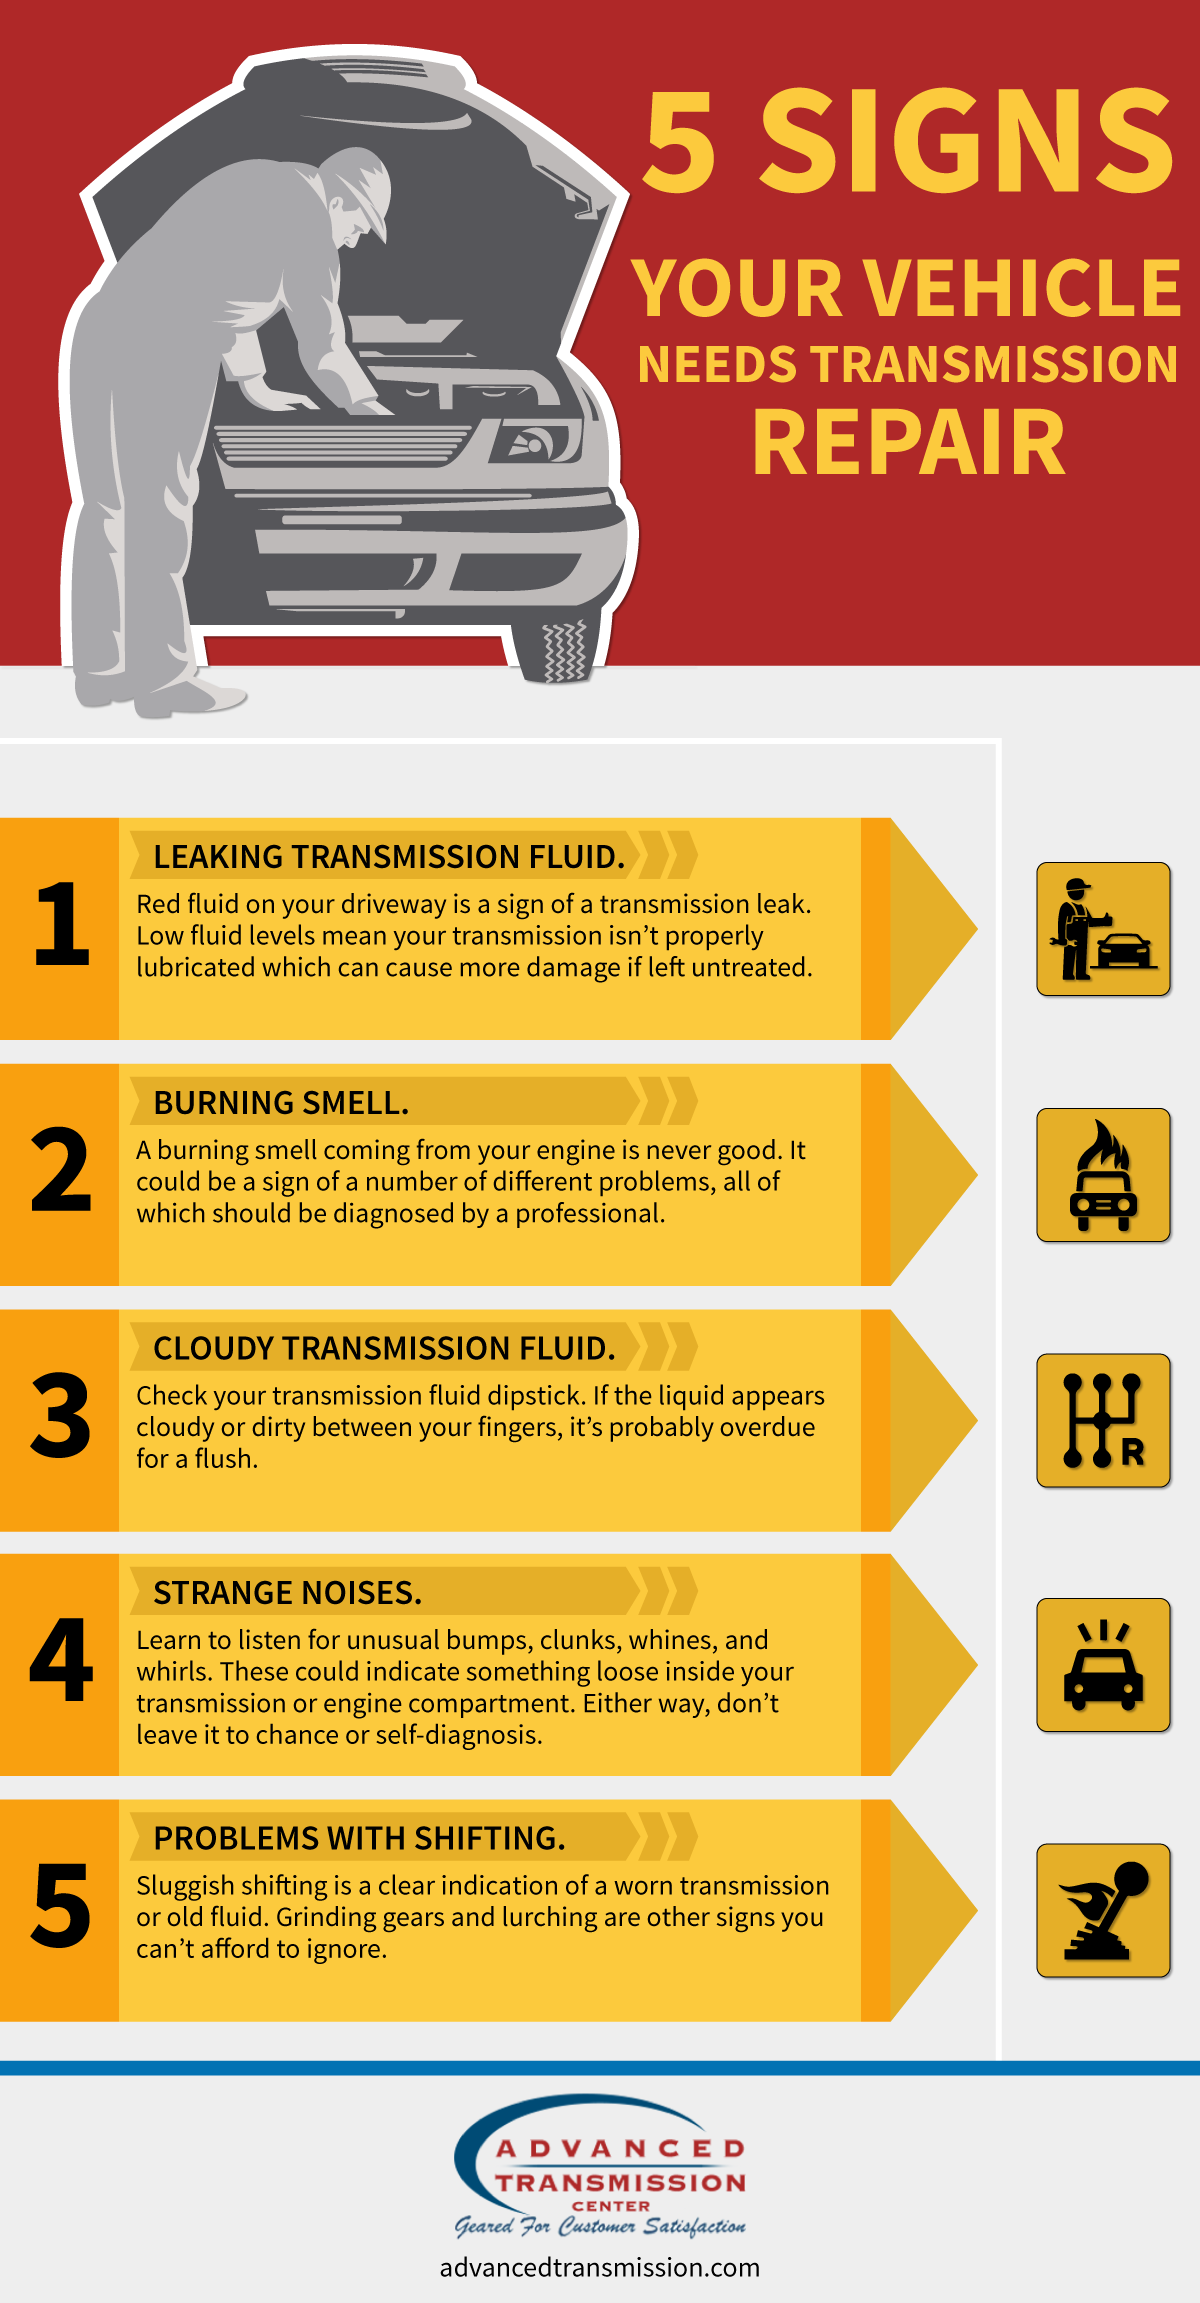 Transmission Slipping Signs >> Vehicle Transmission Repair Advanced Transmission Center